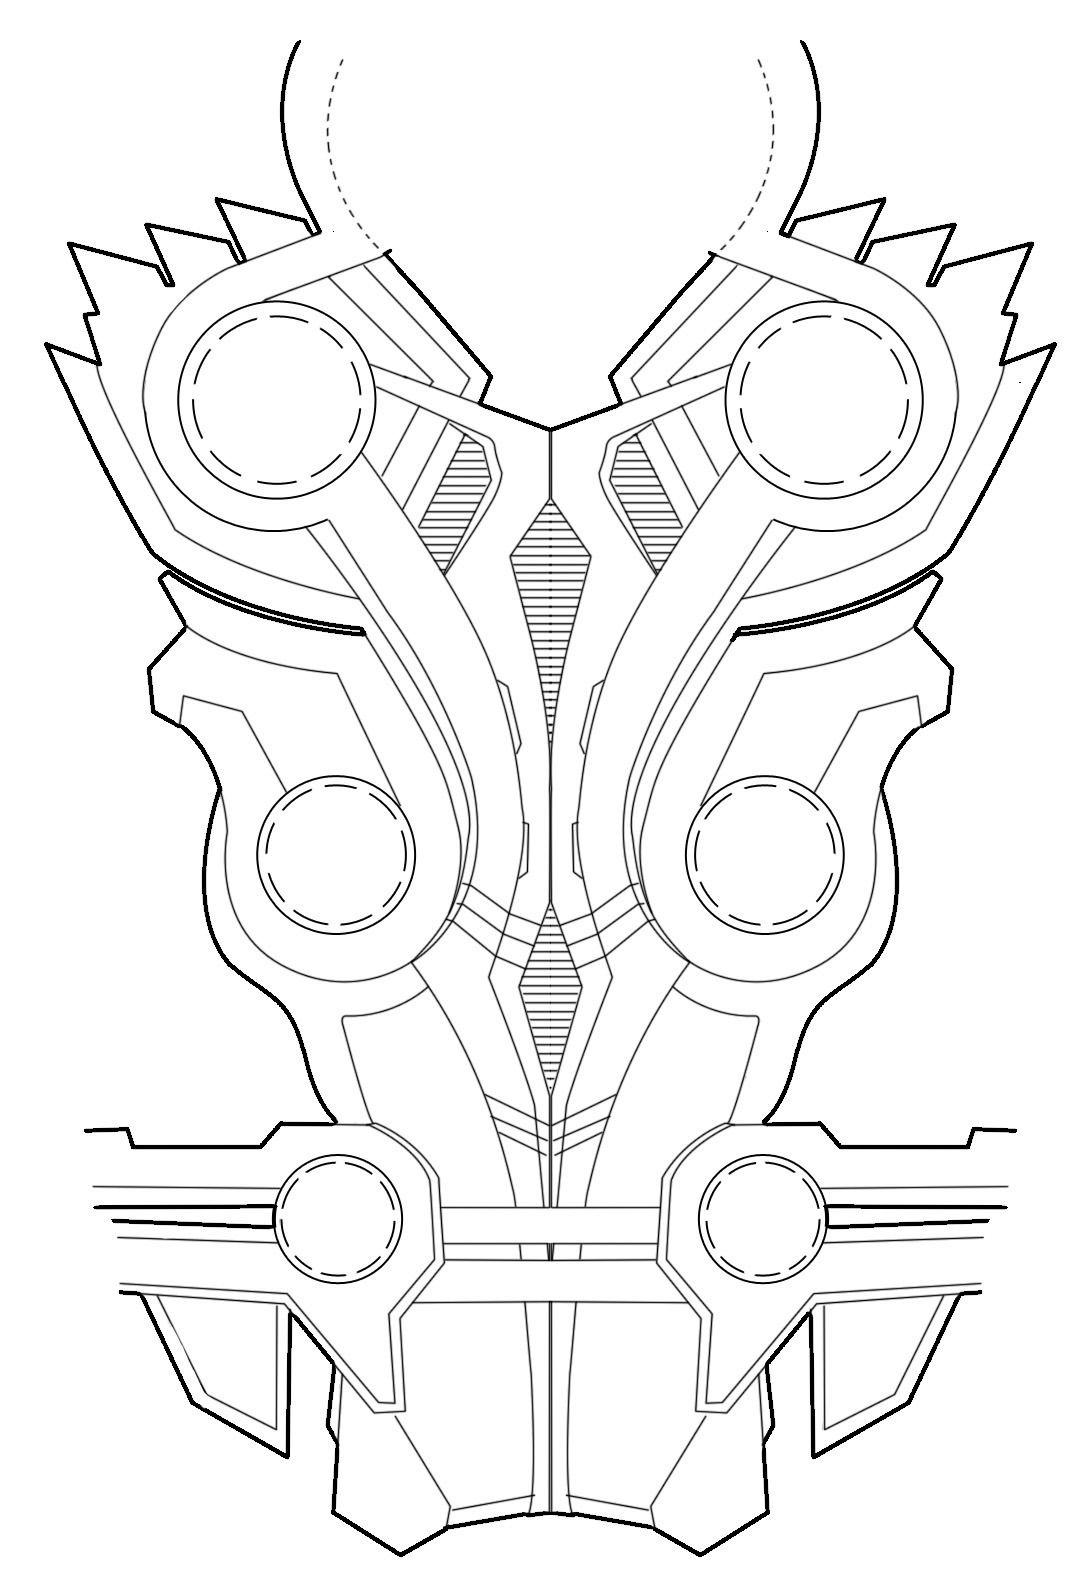 Thors Chest Armor Diagram For Rule S Thor Cosplay